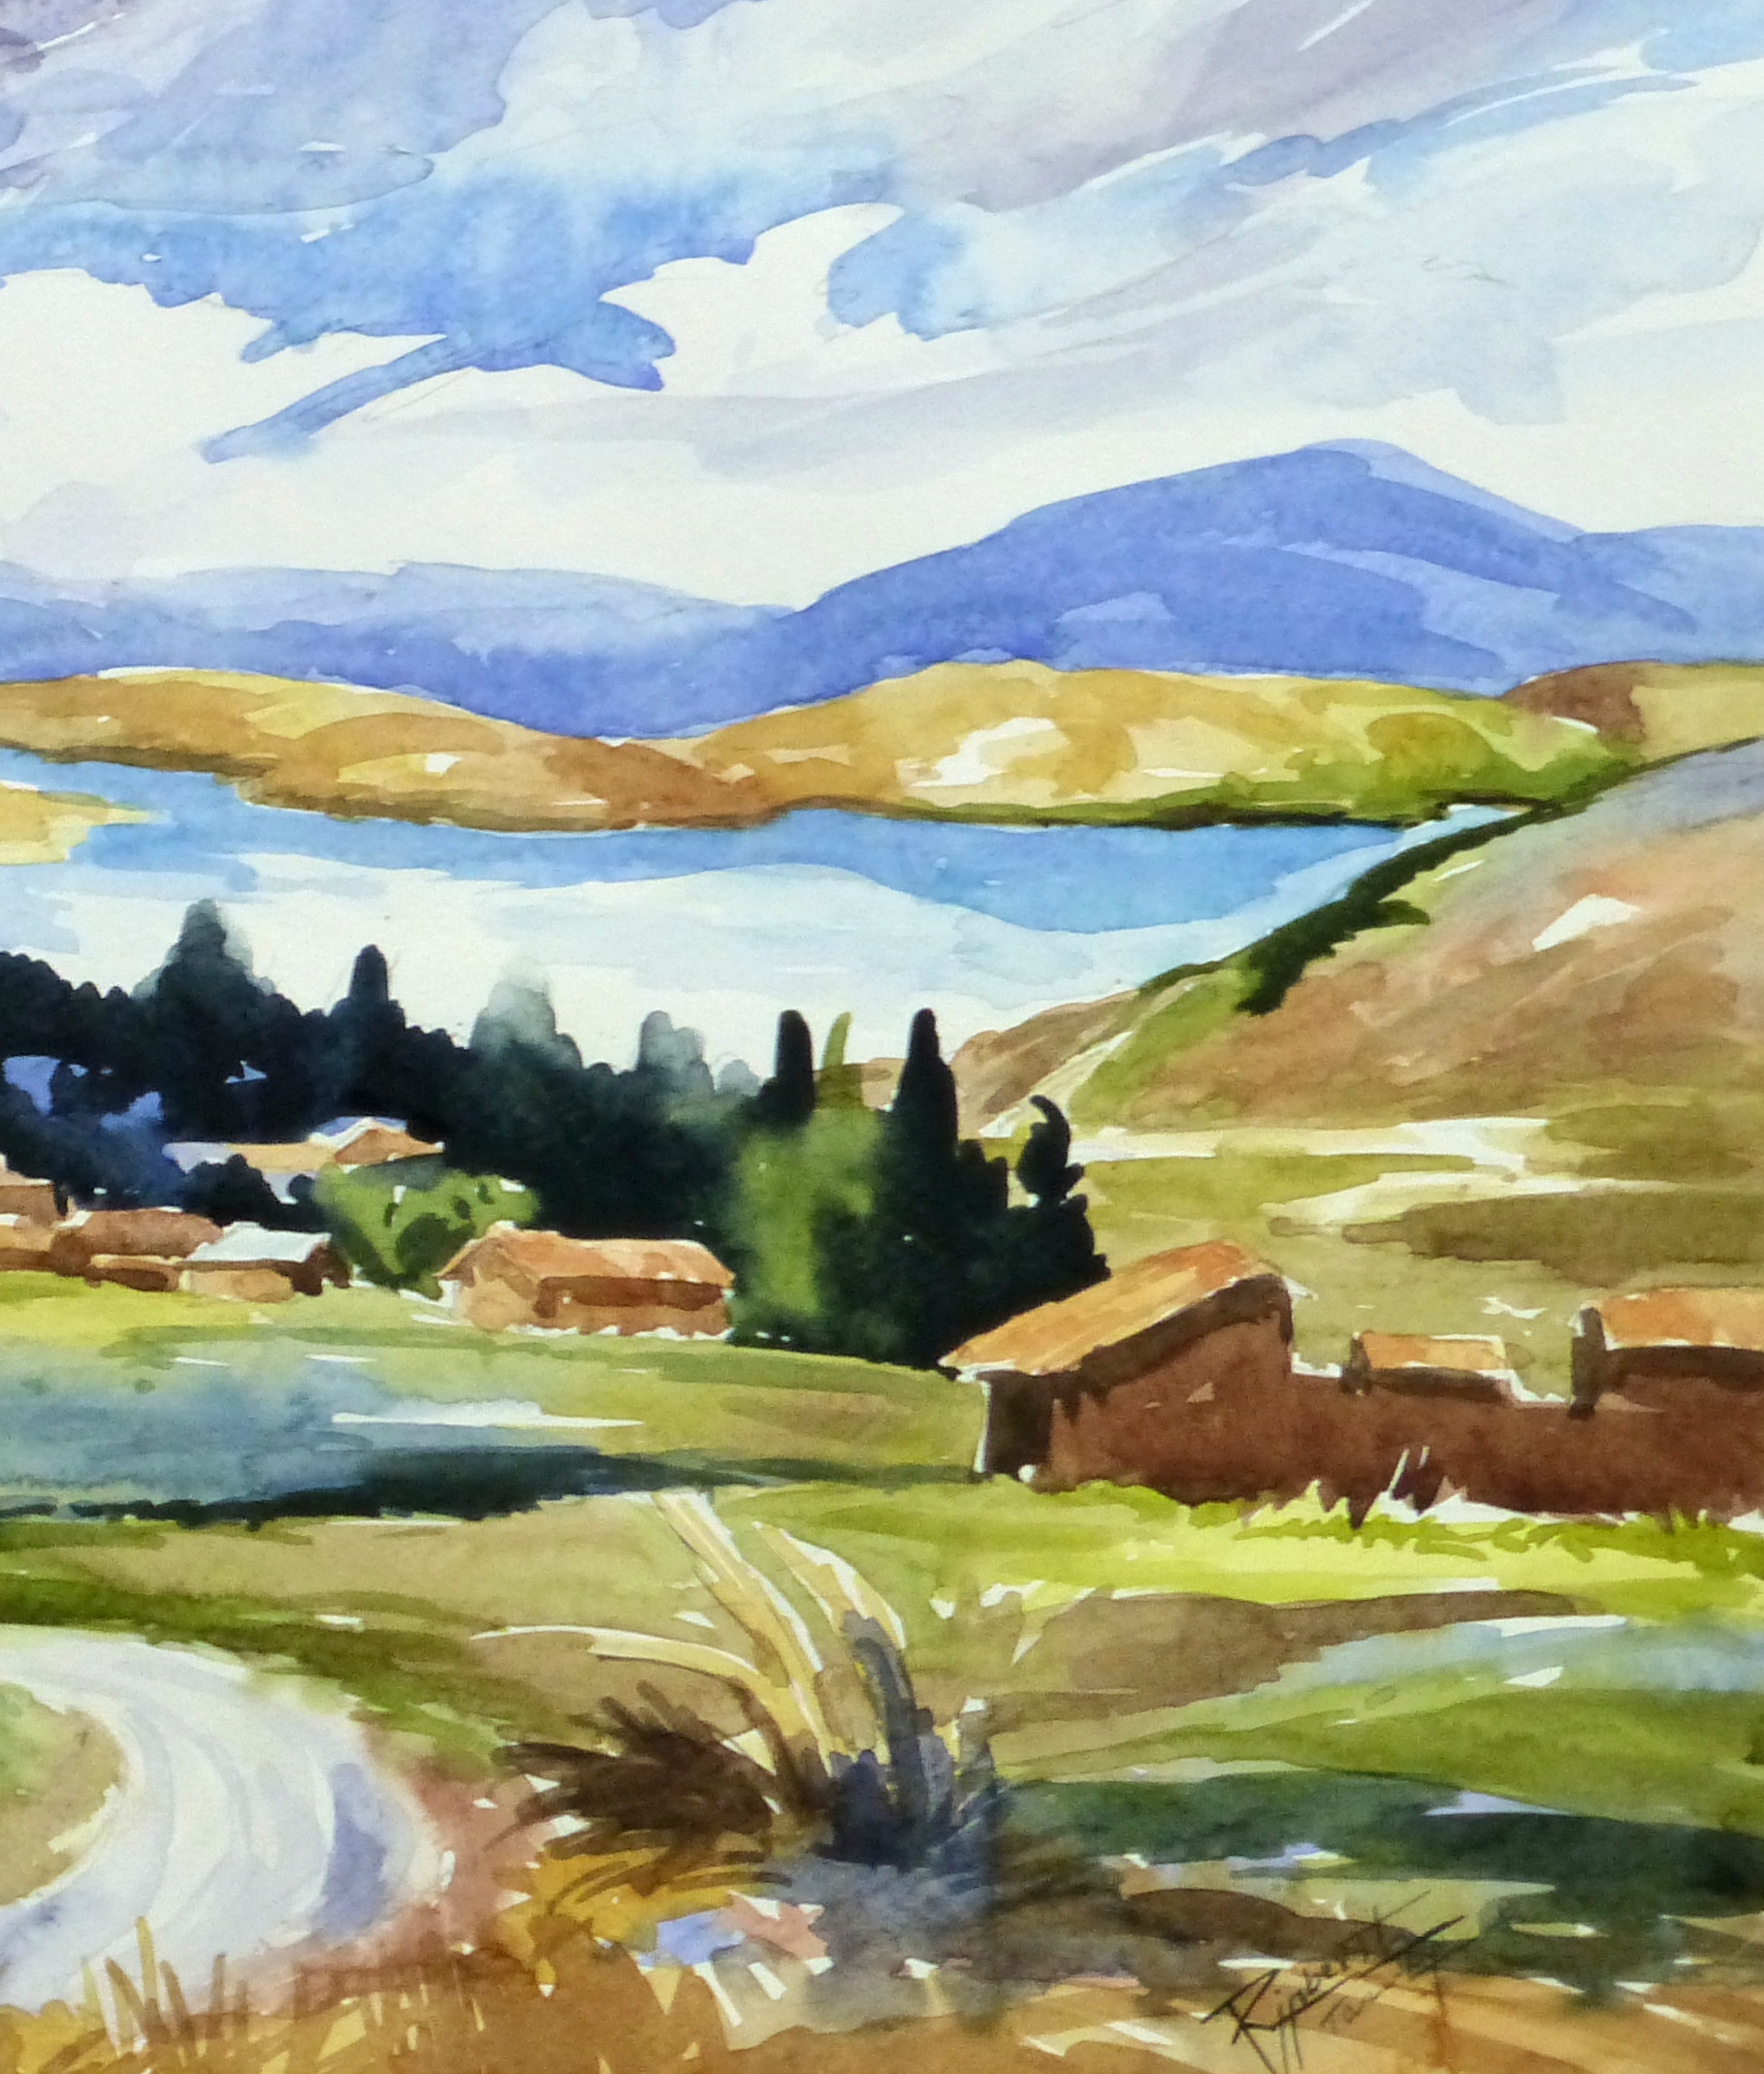 Watercolor Landscape - Lakeside Village, 2011-detail-10539M